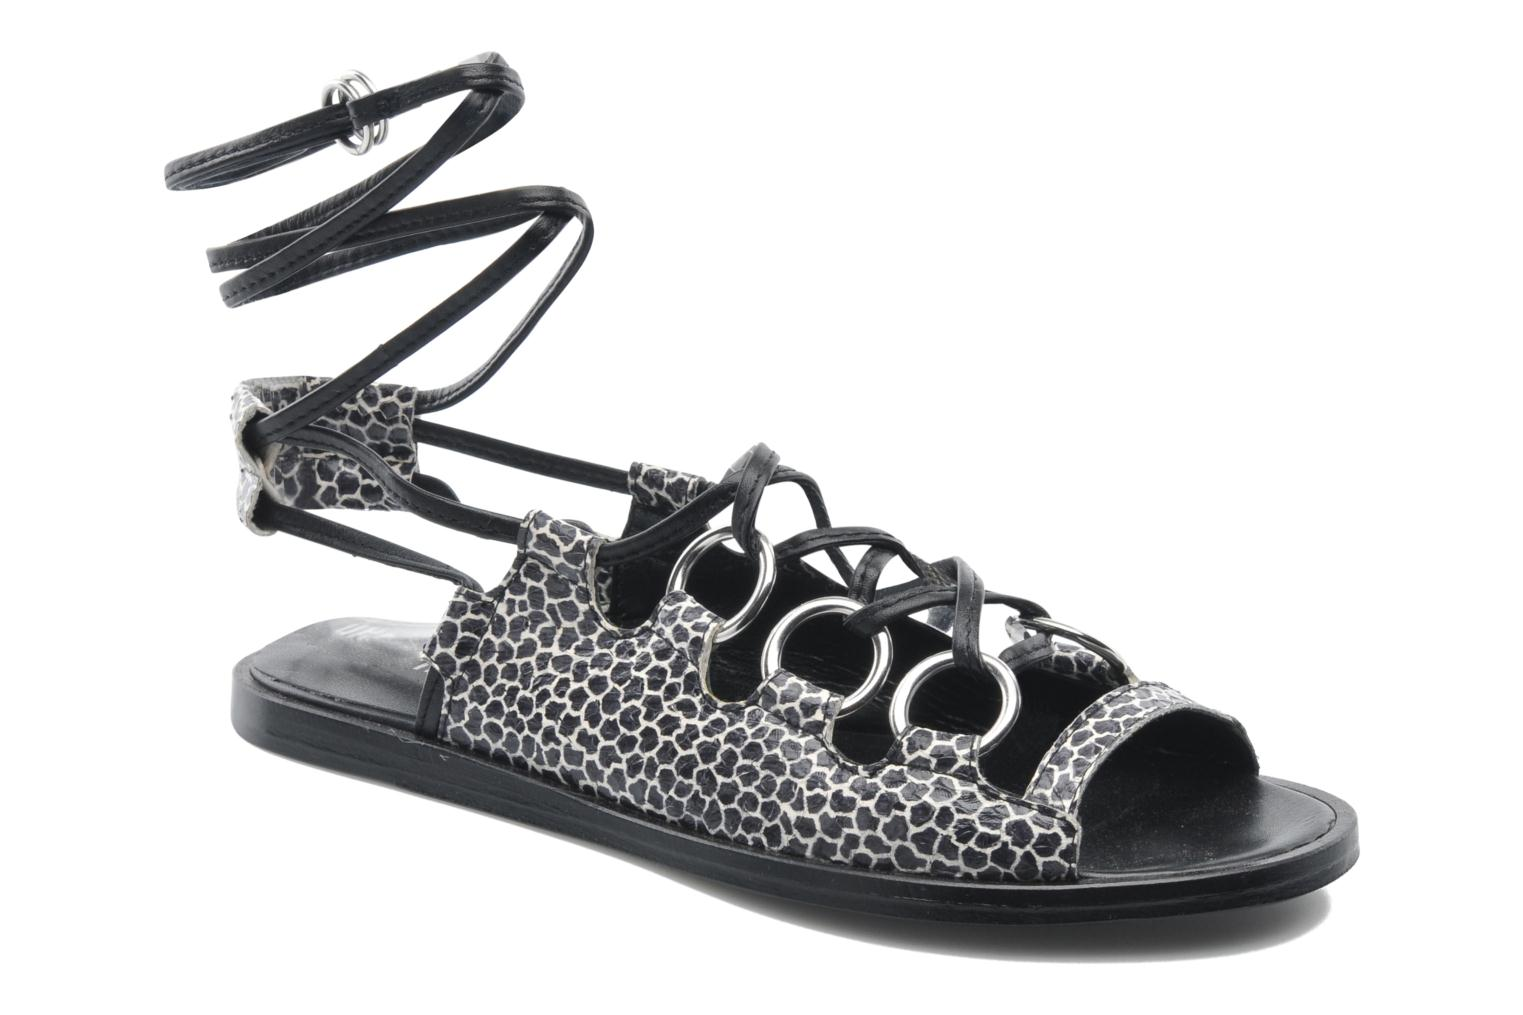 Sandalen Kali multi ring lace up by Opening Ceremony